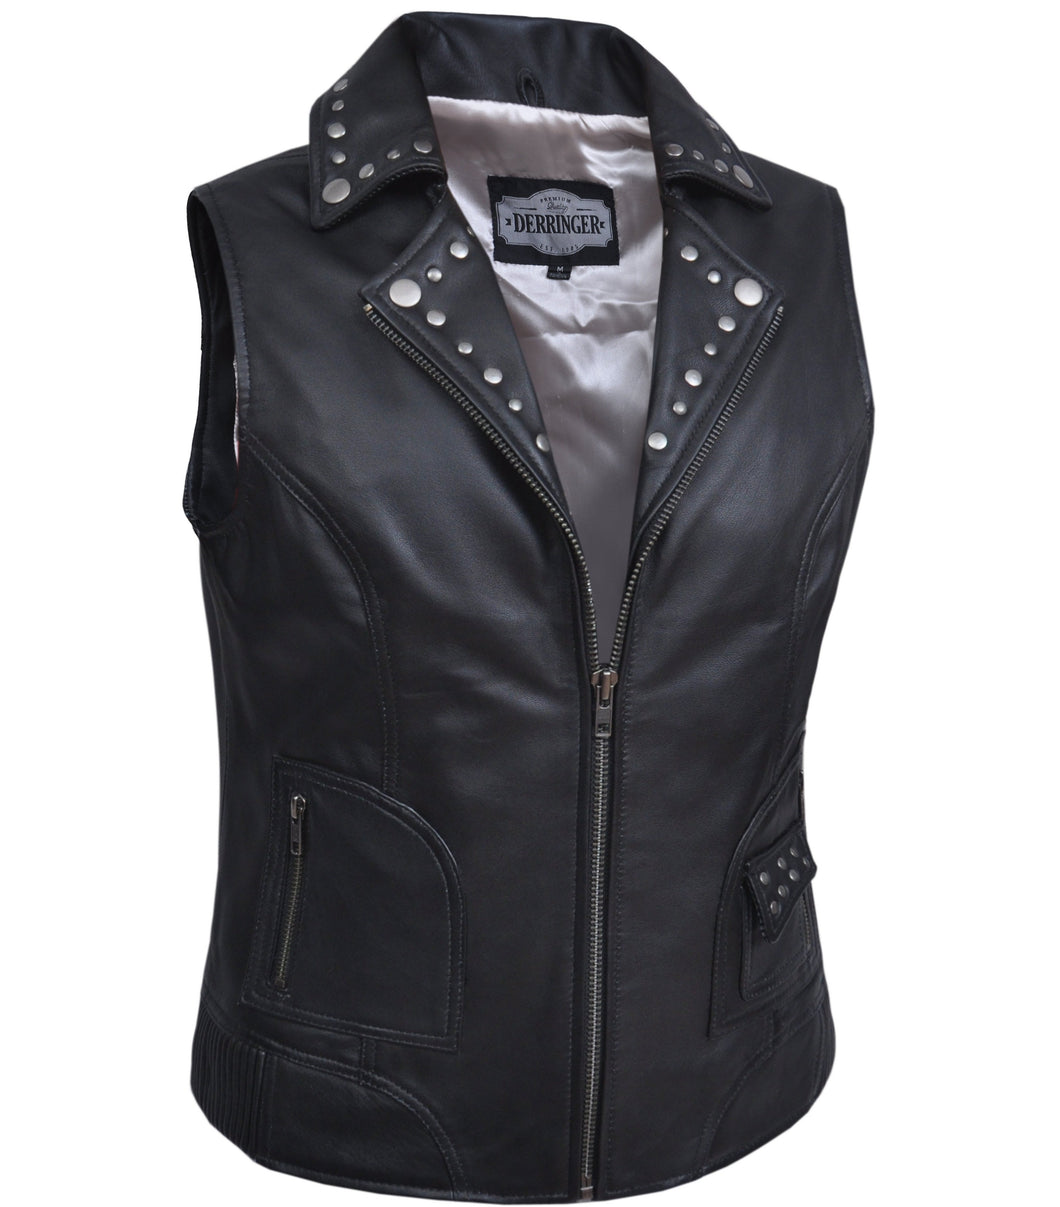 UNIK Ladies Premium Leather Motorcycle Vest - SKU GRL-6876.00-UN - Ghost Rider Leather